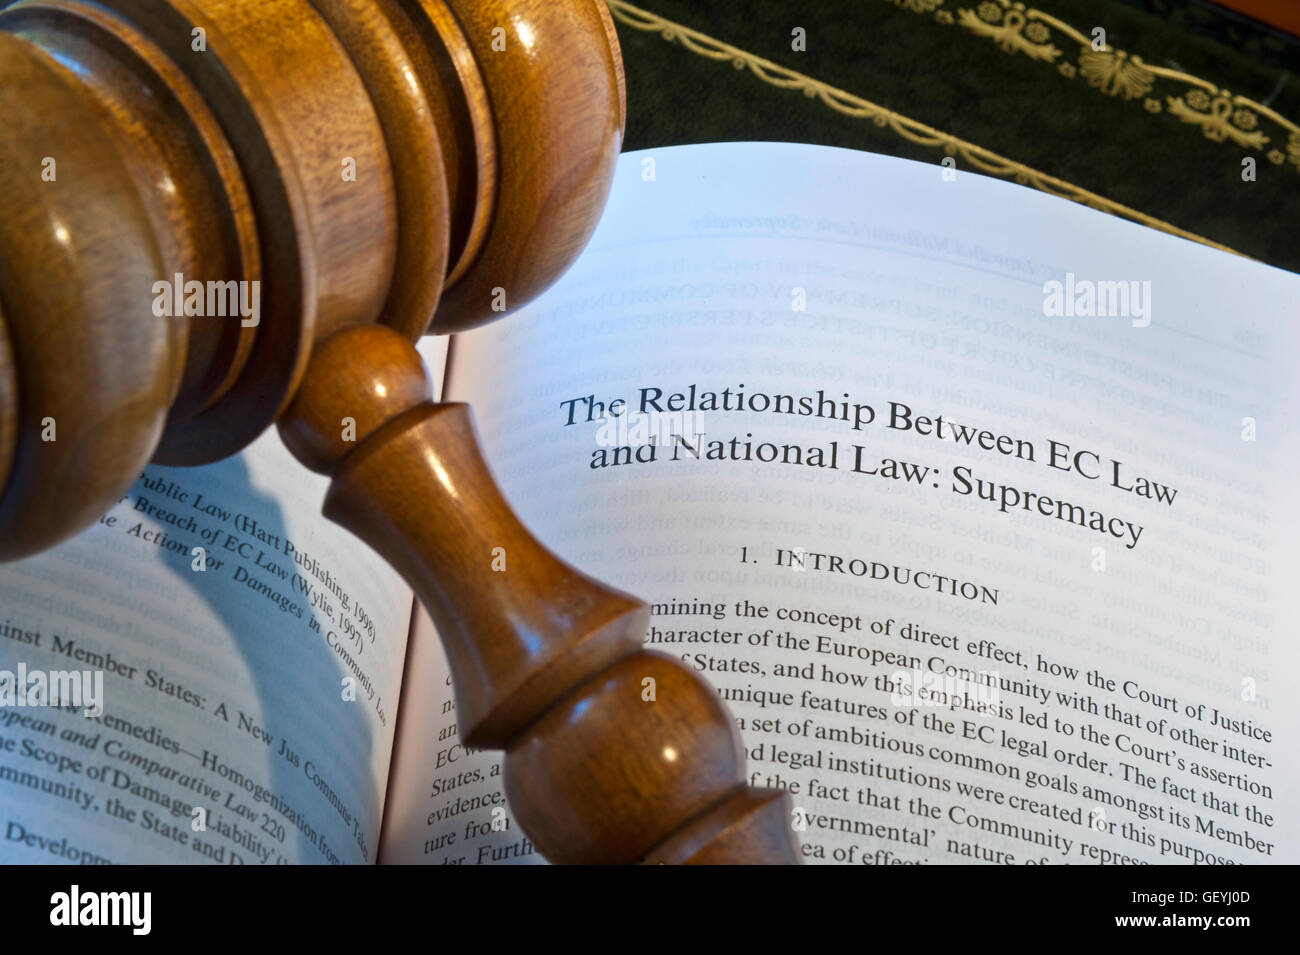 BREXIT Concept image of open EU reference Law book on desk with judges gavel on page reference to EC Law & National - Stock Image